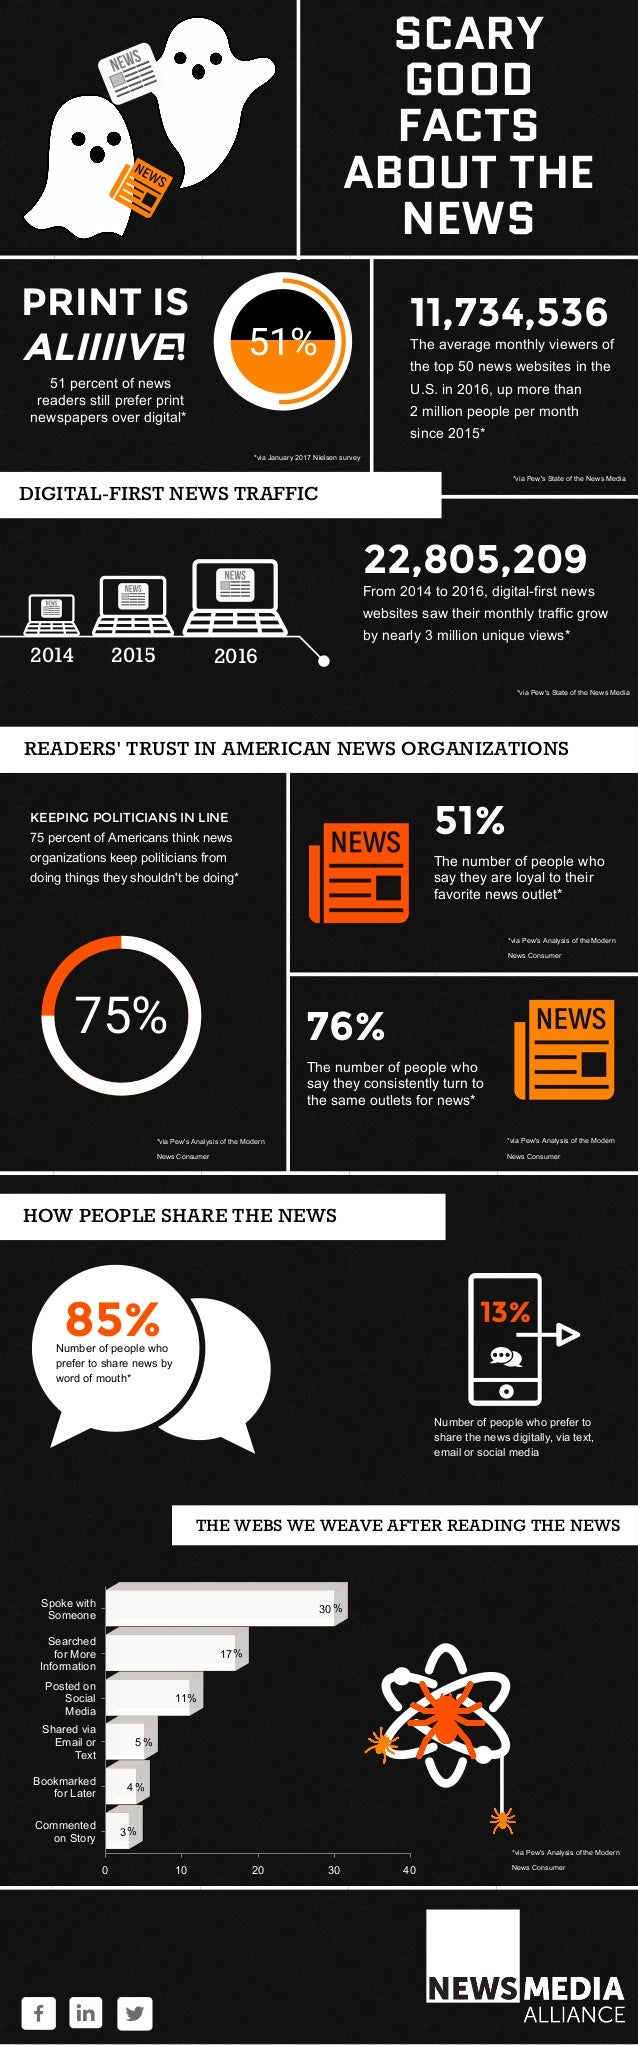 2014 2015 2016 HOW PEOPLE SHARE THE NEWS SCARY GOOD FACTS ABOUT THE NEWS 11,734,536 The average monthly viewers of the top...